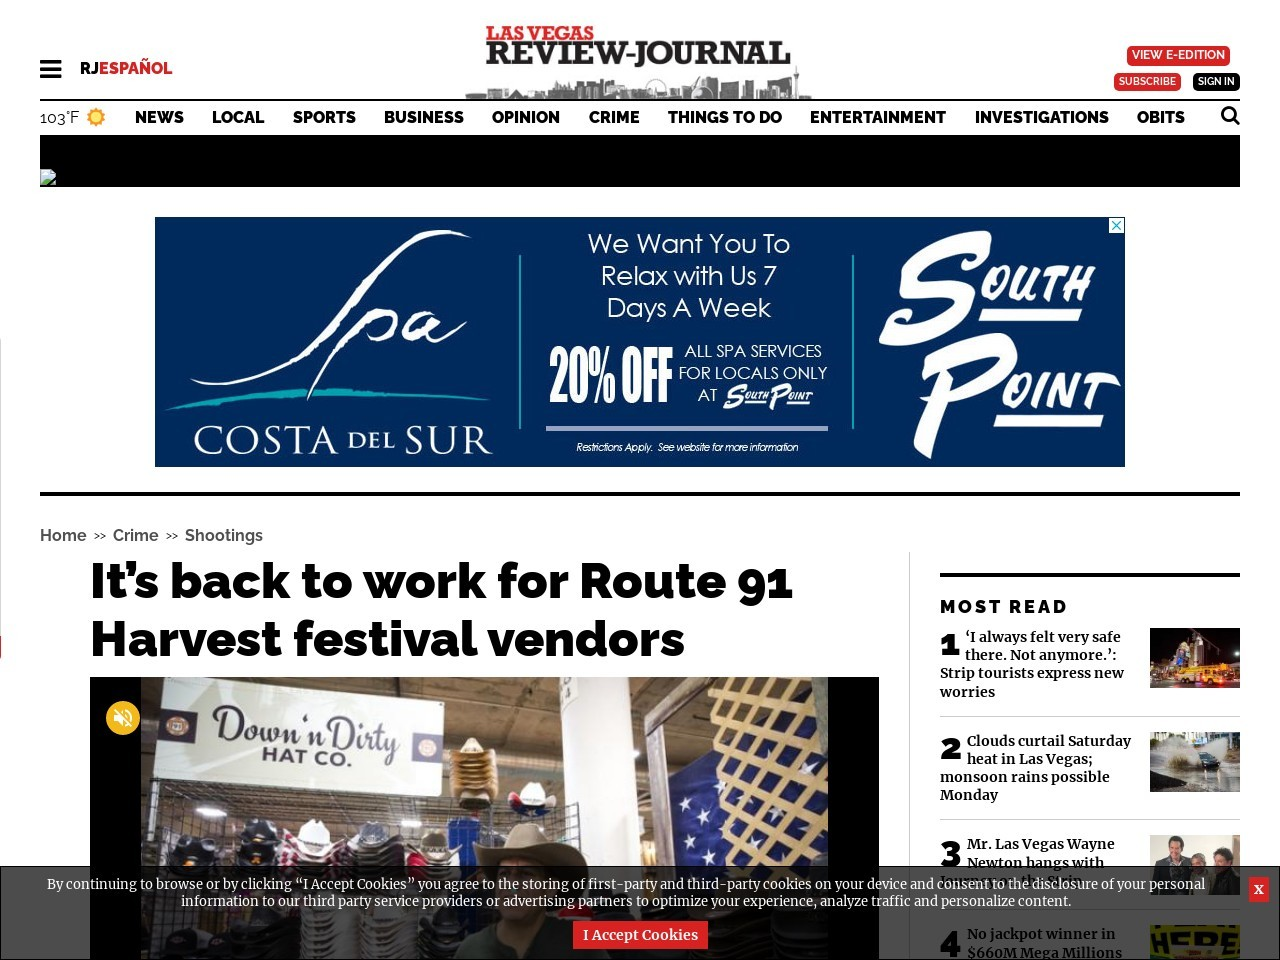 For Route 91 vendors, it's back to work